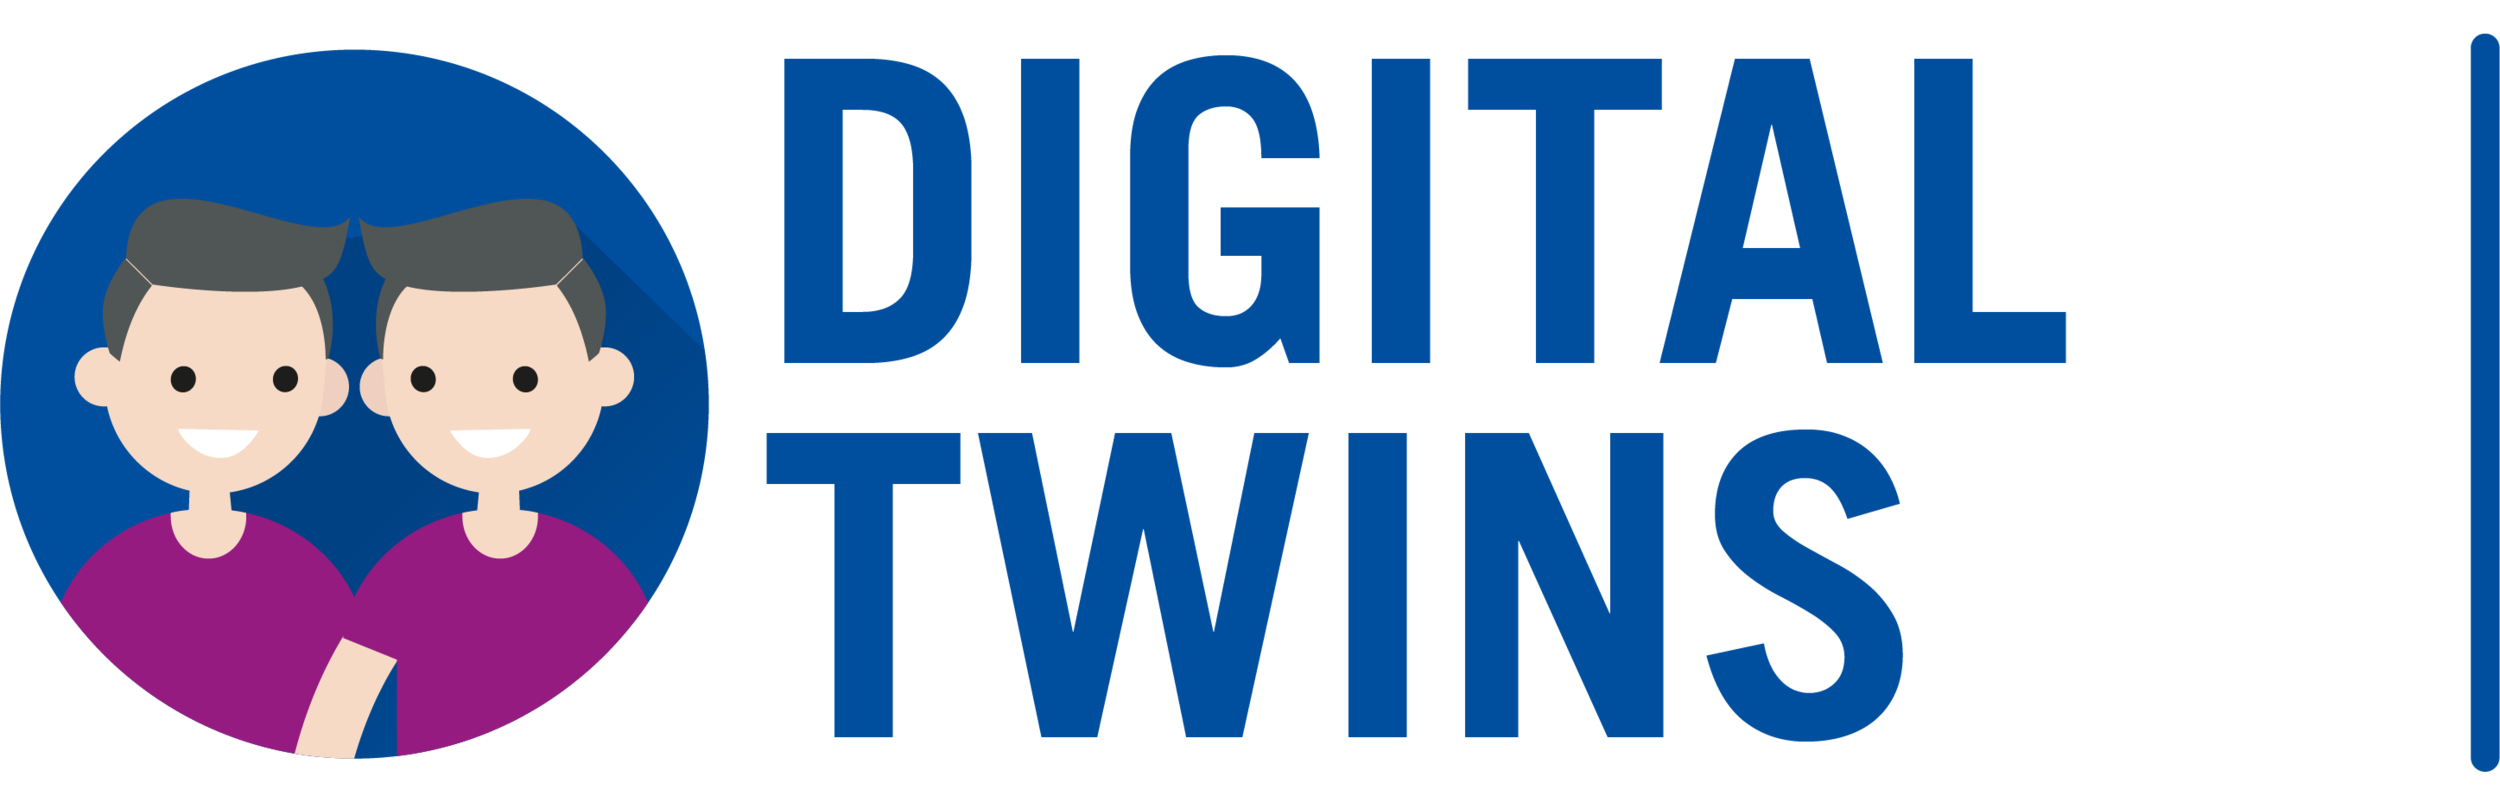 DIGITAL TWINS.png